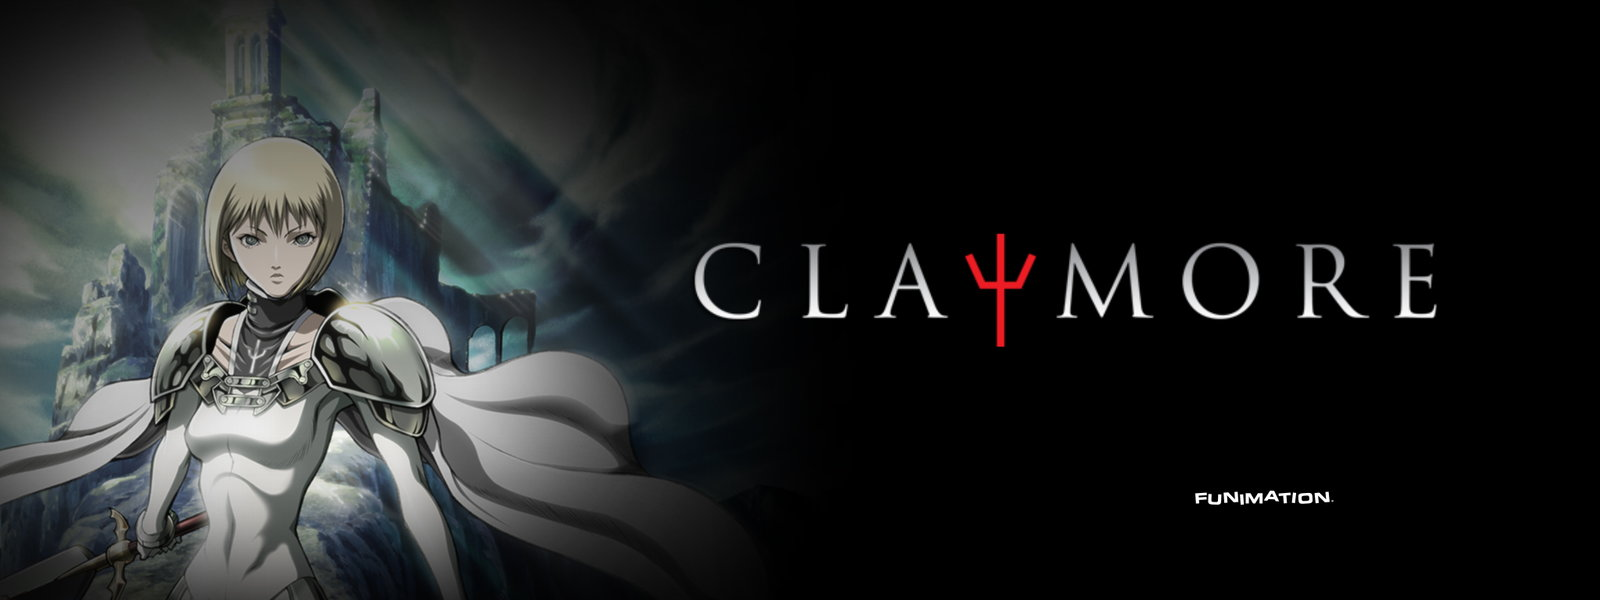 Claymore Loading